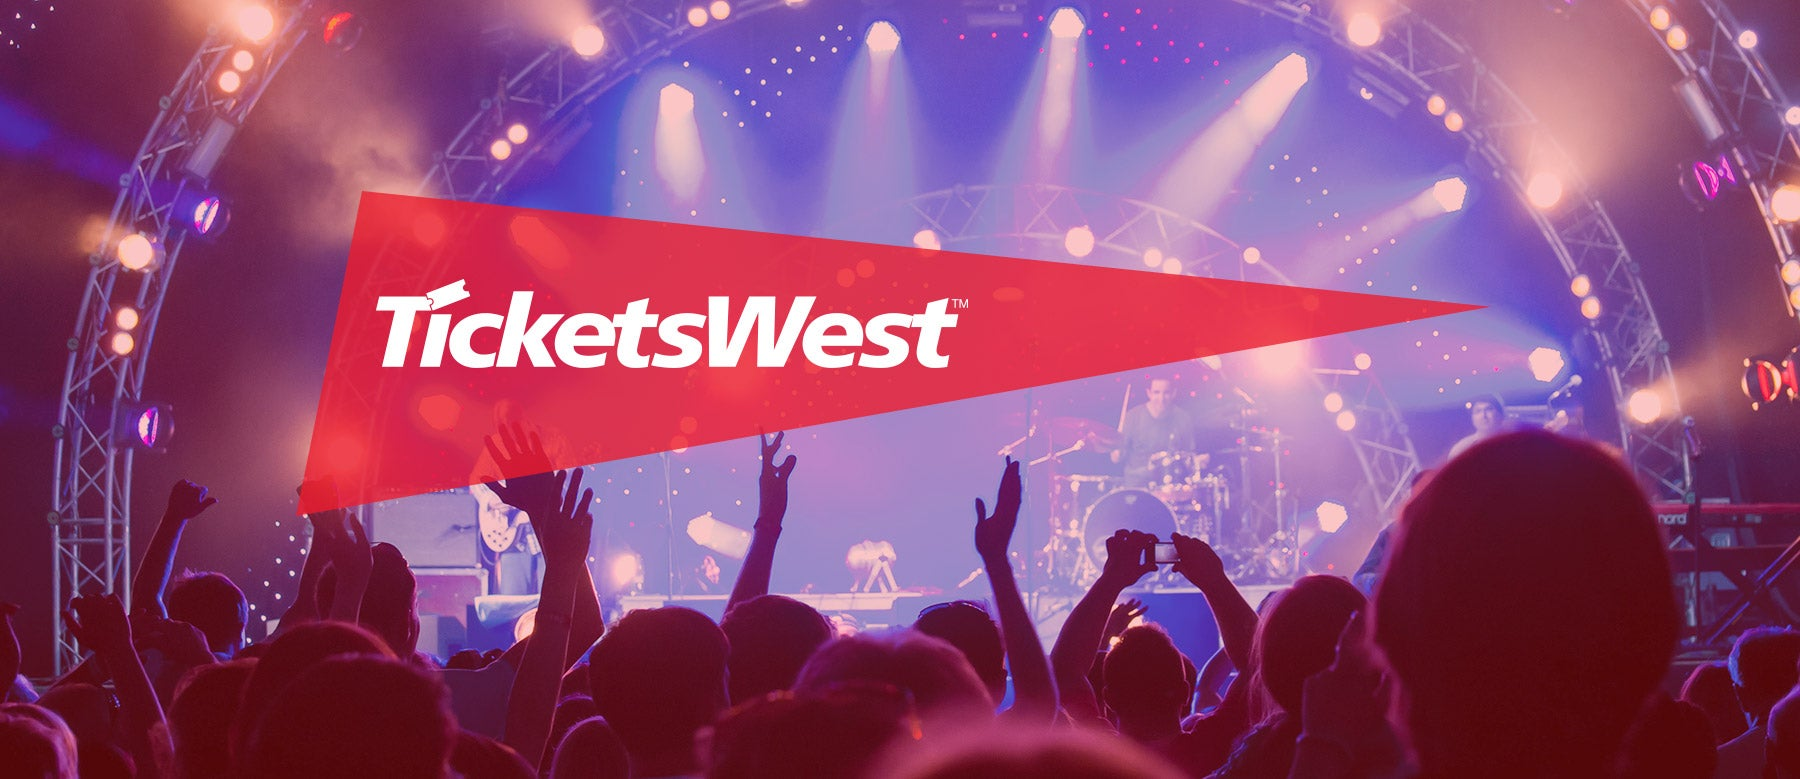 news_TicketsWest_header.jpg